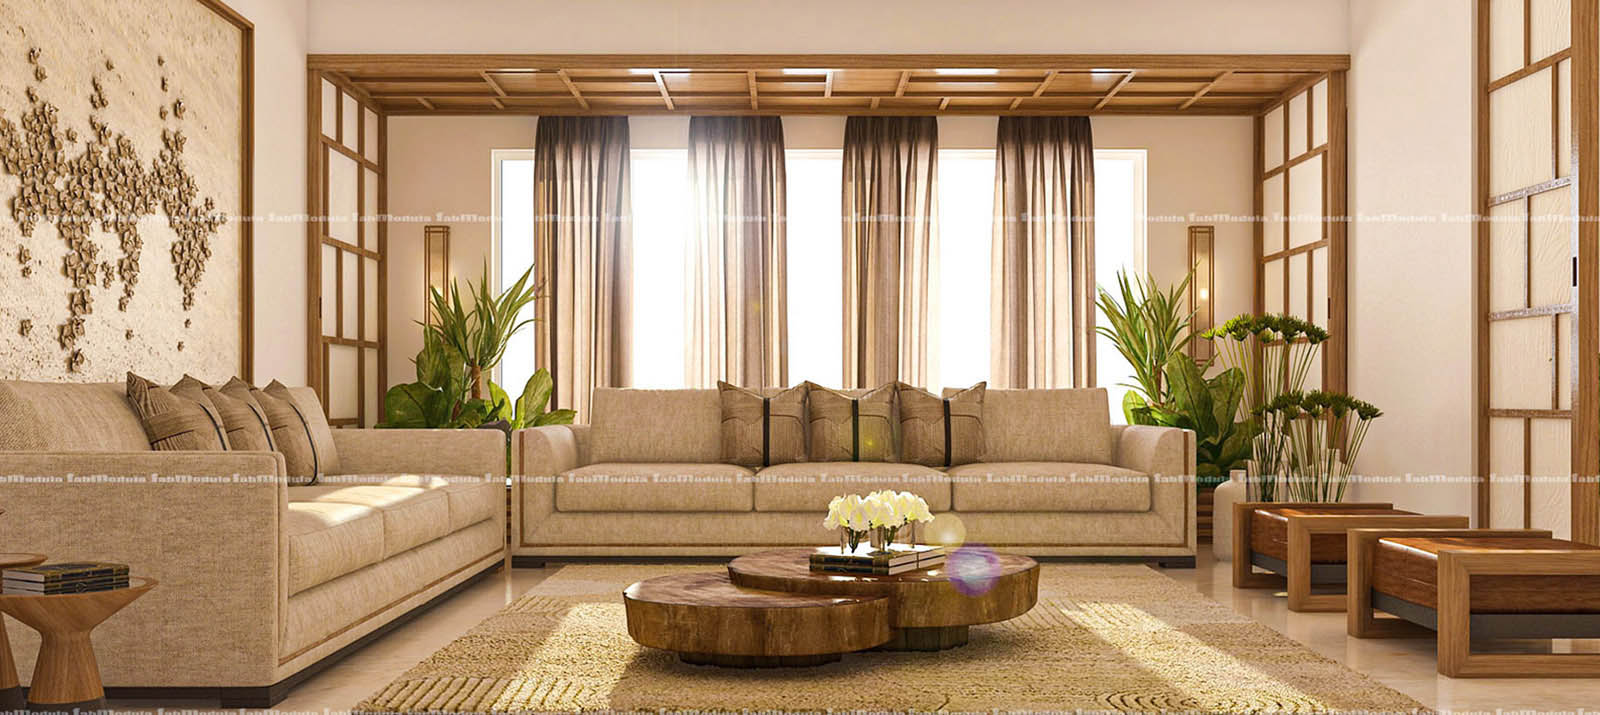 Design House Interiors Fabmodula Interior Designers Bangalore Best Interior Design